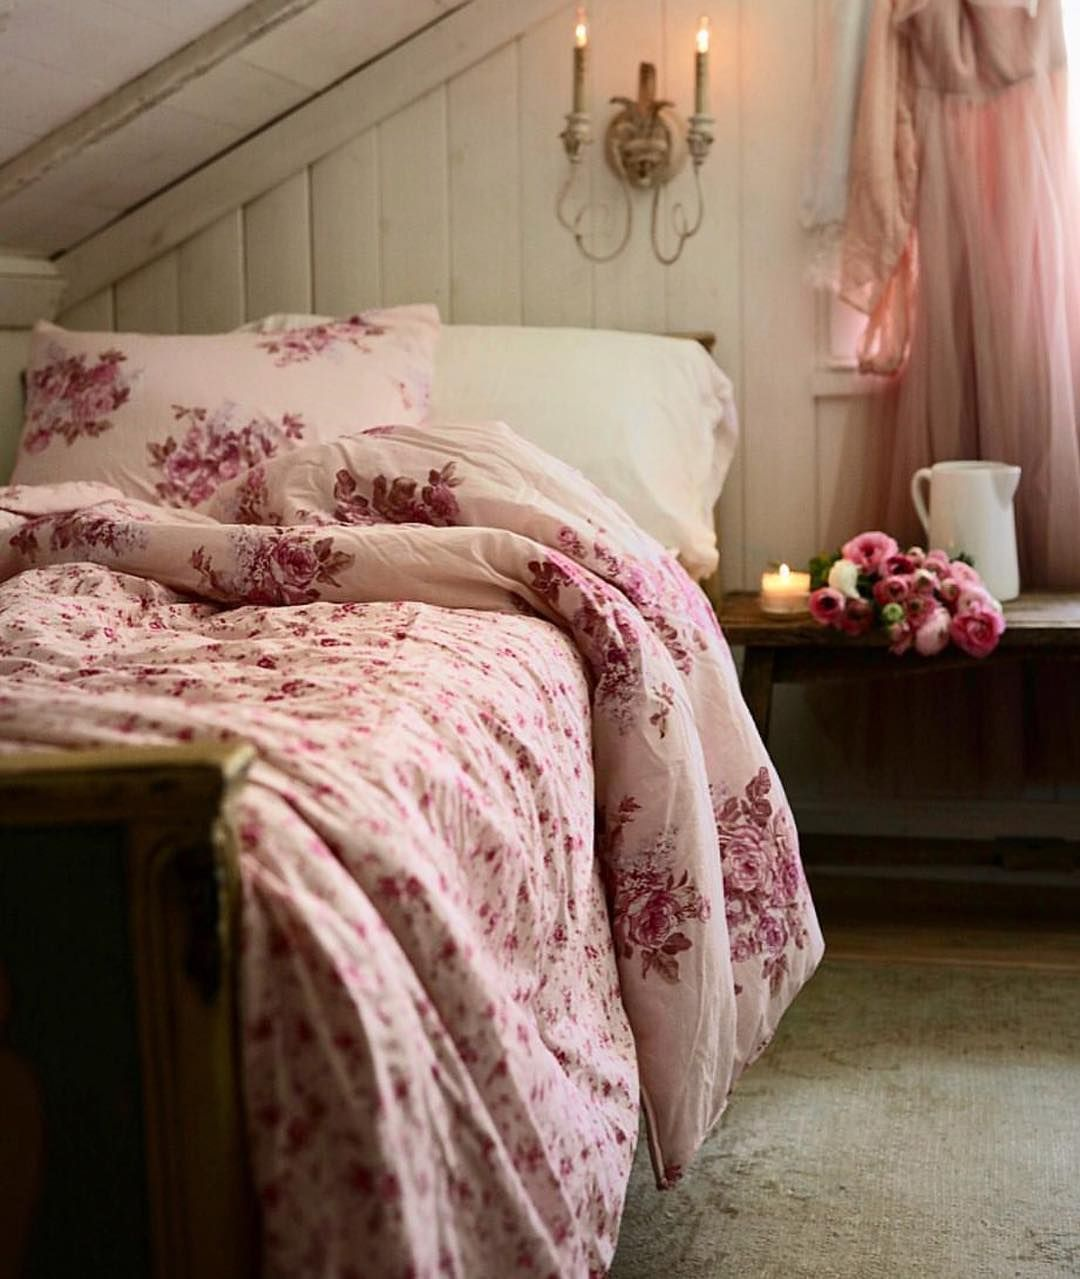 Shop Simply Shabby Chic Bedding Target Cactus Rosebloom Collection Simplyshabbychic Shabbychic Target Spring Bedroomdecor Targetstyle 침실 아이디어 인테리어 집